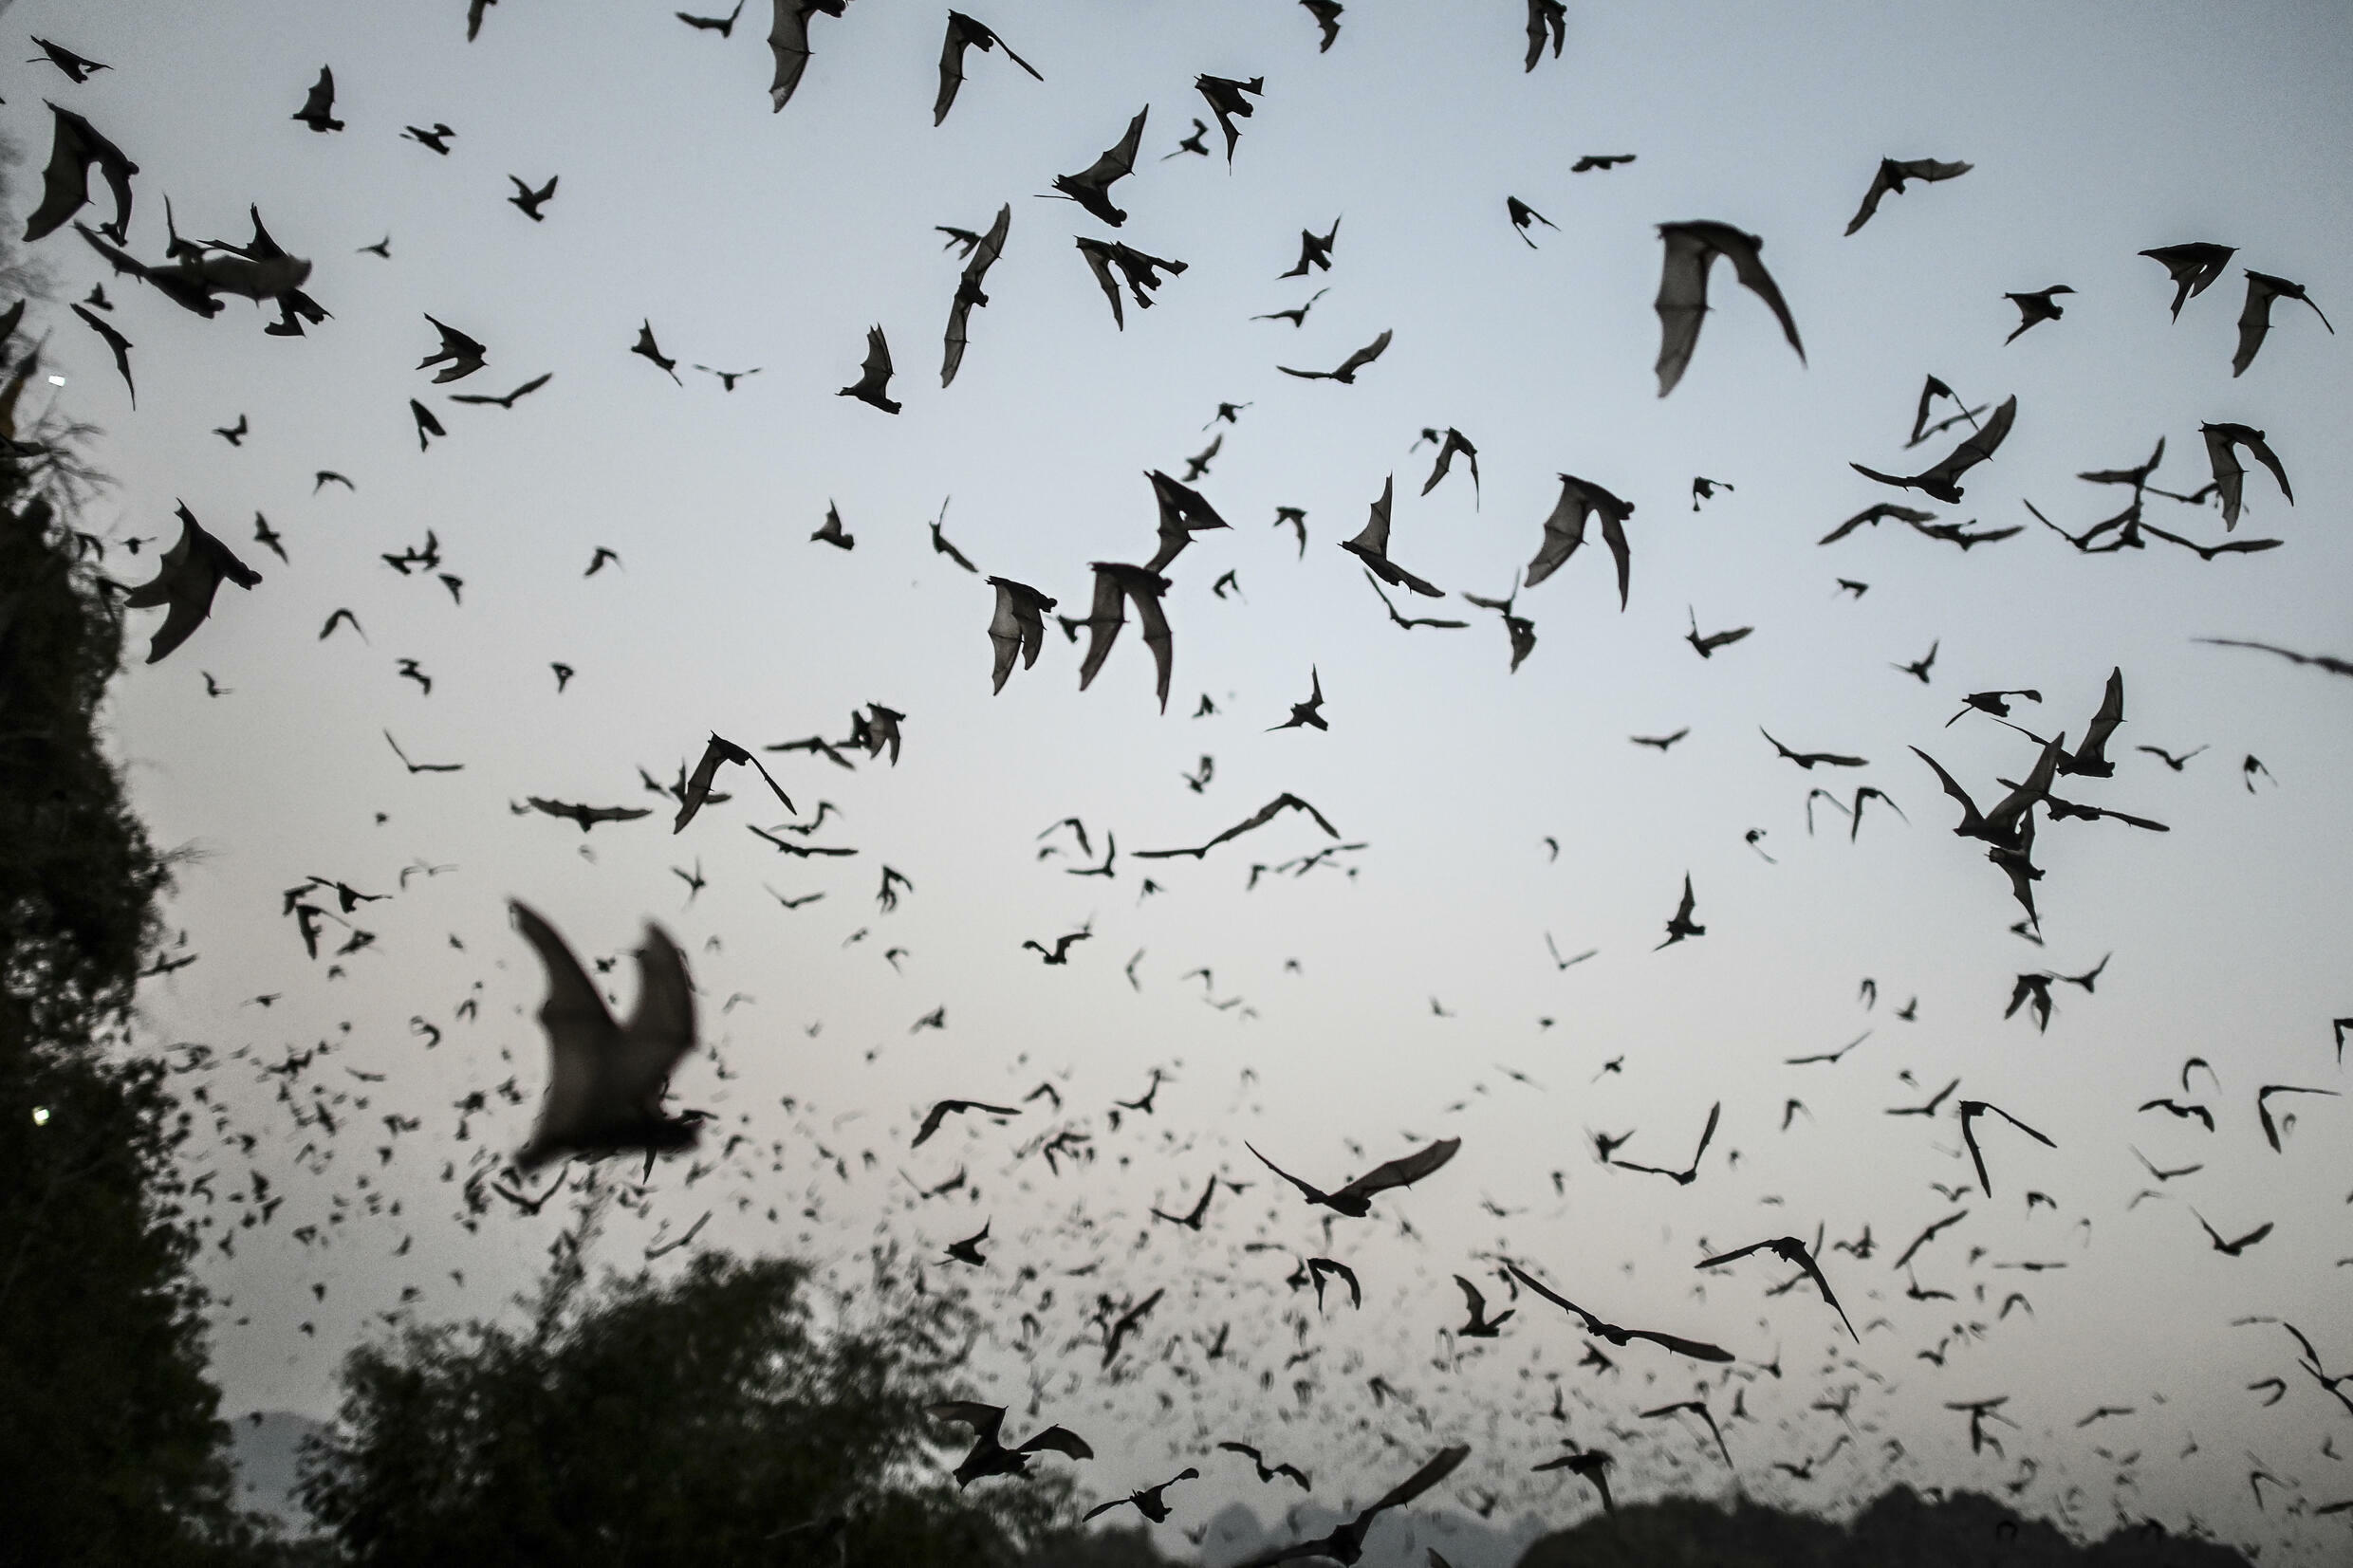 Researchers said their findings show that viruses genetically close to the SAR-CoV-2 pandemic virus 'exist in nature' among bat species